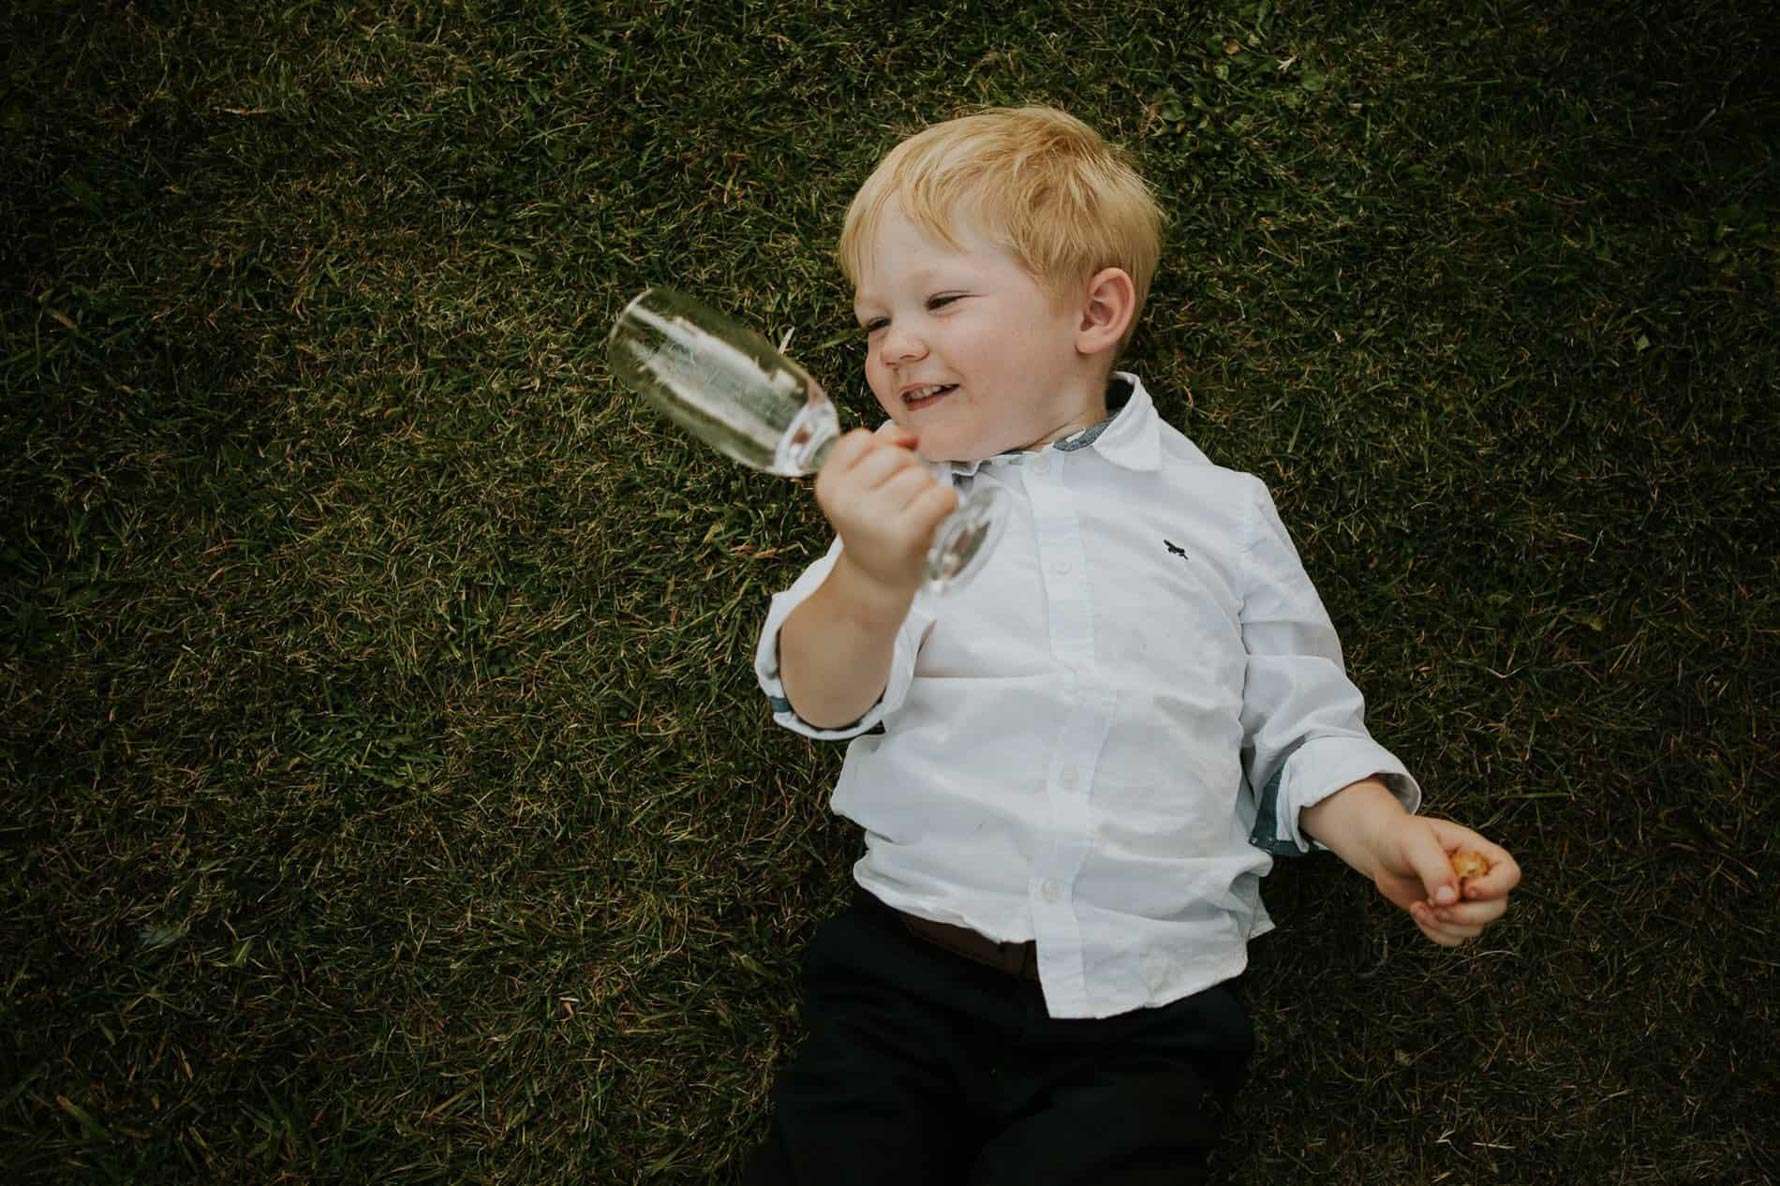 Boy holding a wine glass and laying down